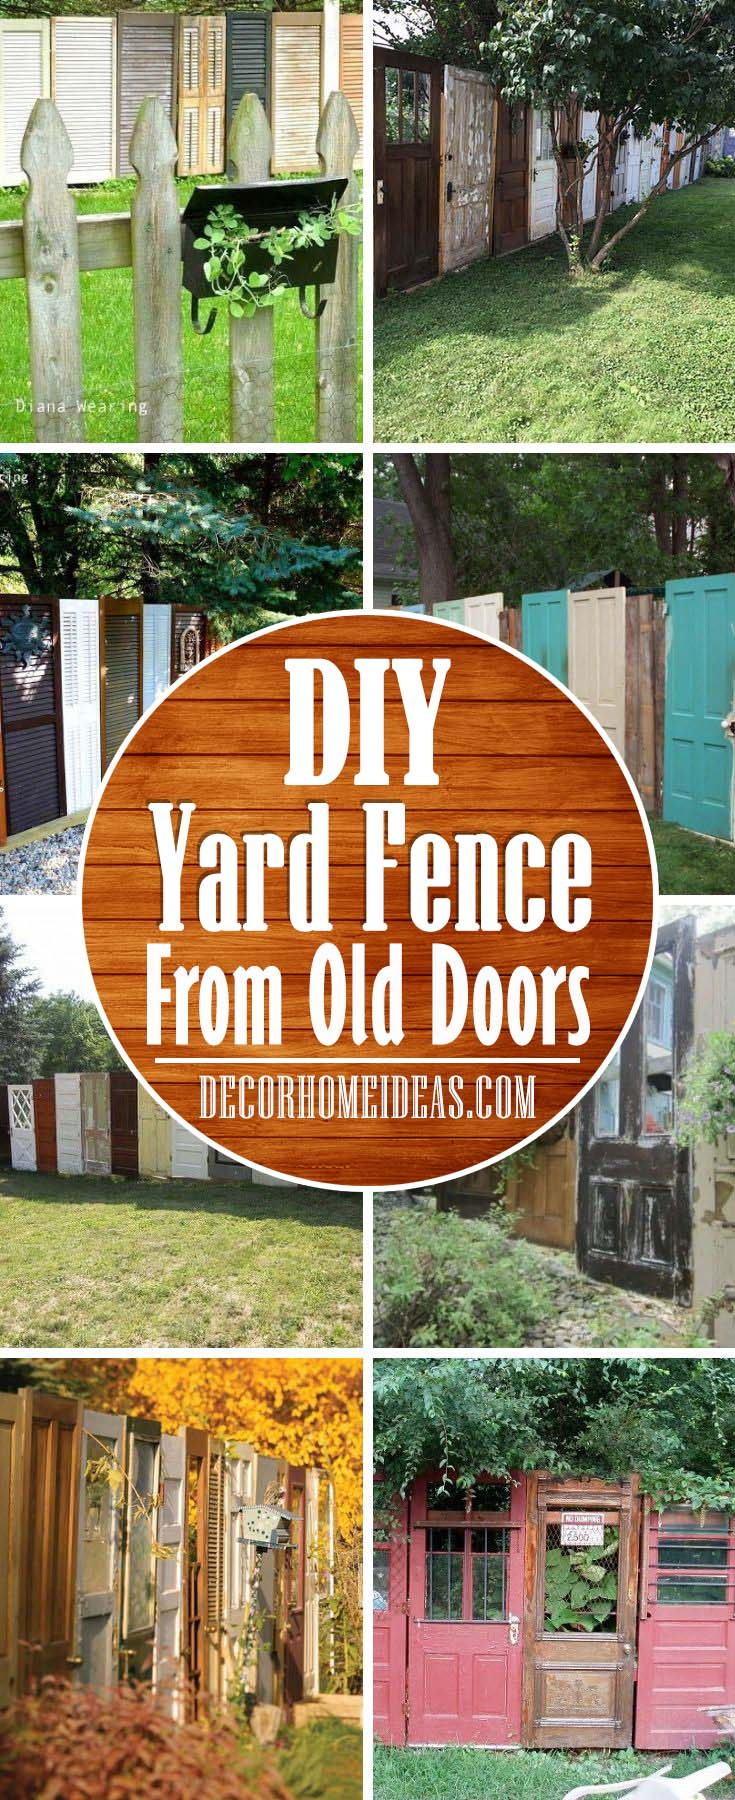 Yard Fence Made Out Of Old Doors. How to repurpose old doors and build a stunning fence. #diy #repurpose #doors #old #decorhomeideas